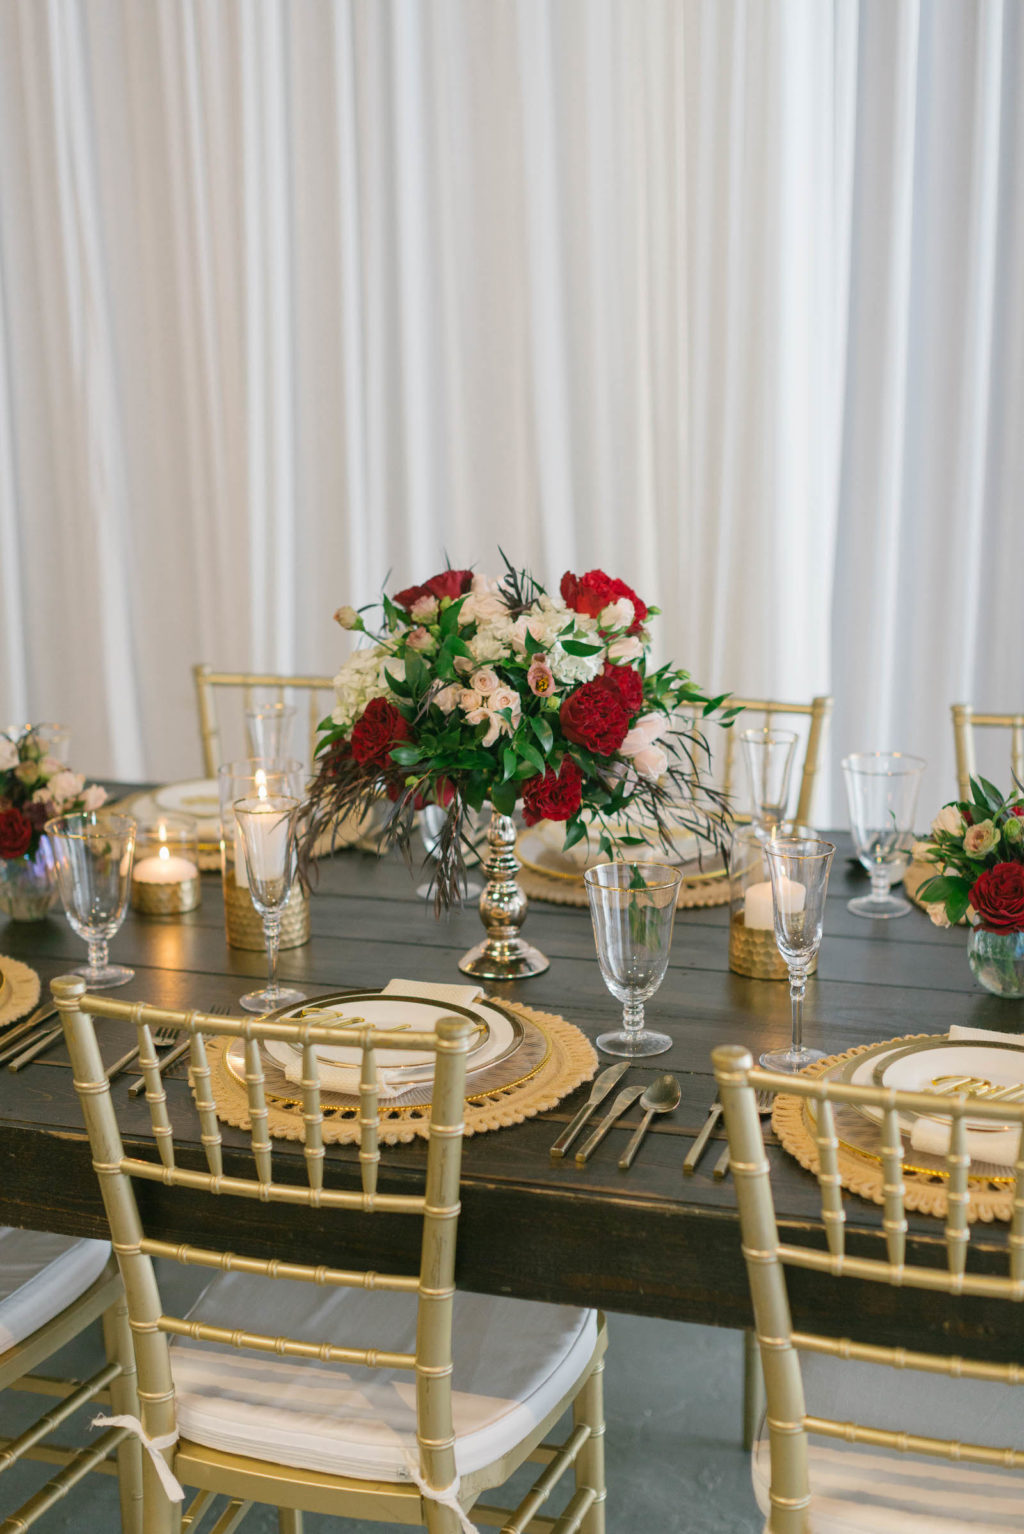 Romantic Red Low Centerpieces with Gold Chargers and Personalized Name Cards Styled with Love Influencer Wedding | St. Pete Beach Wedding Venue Bellwether Beach Resort